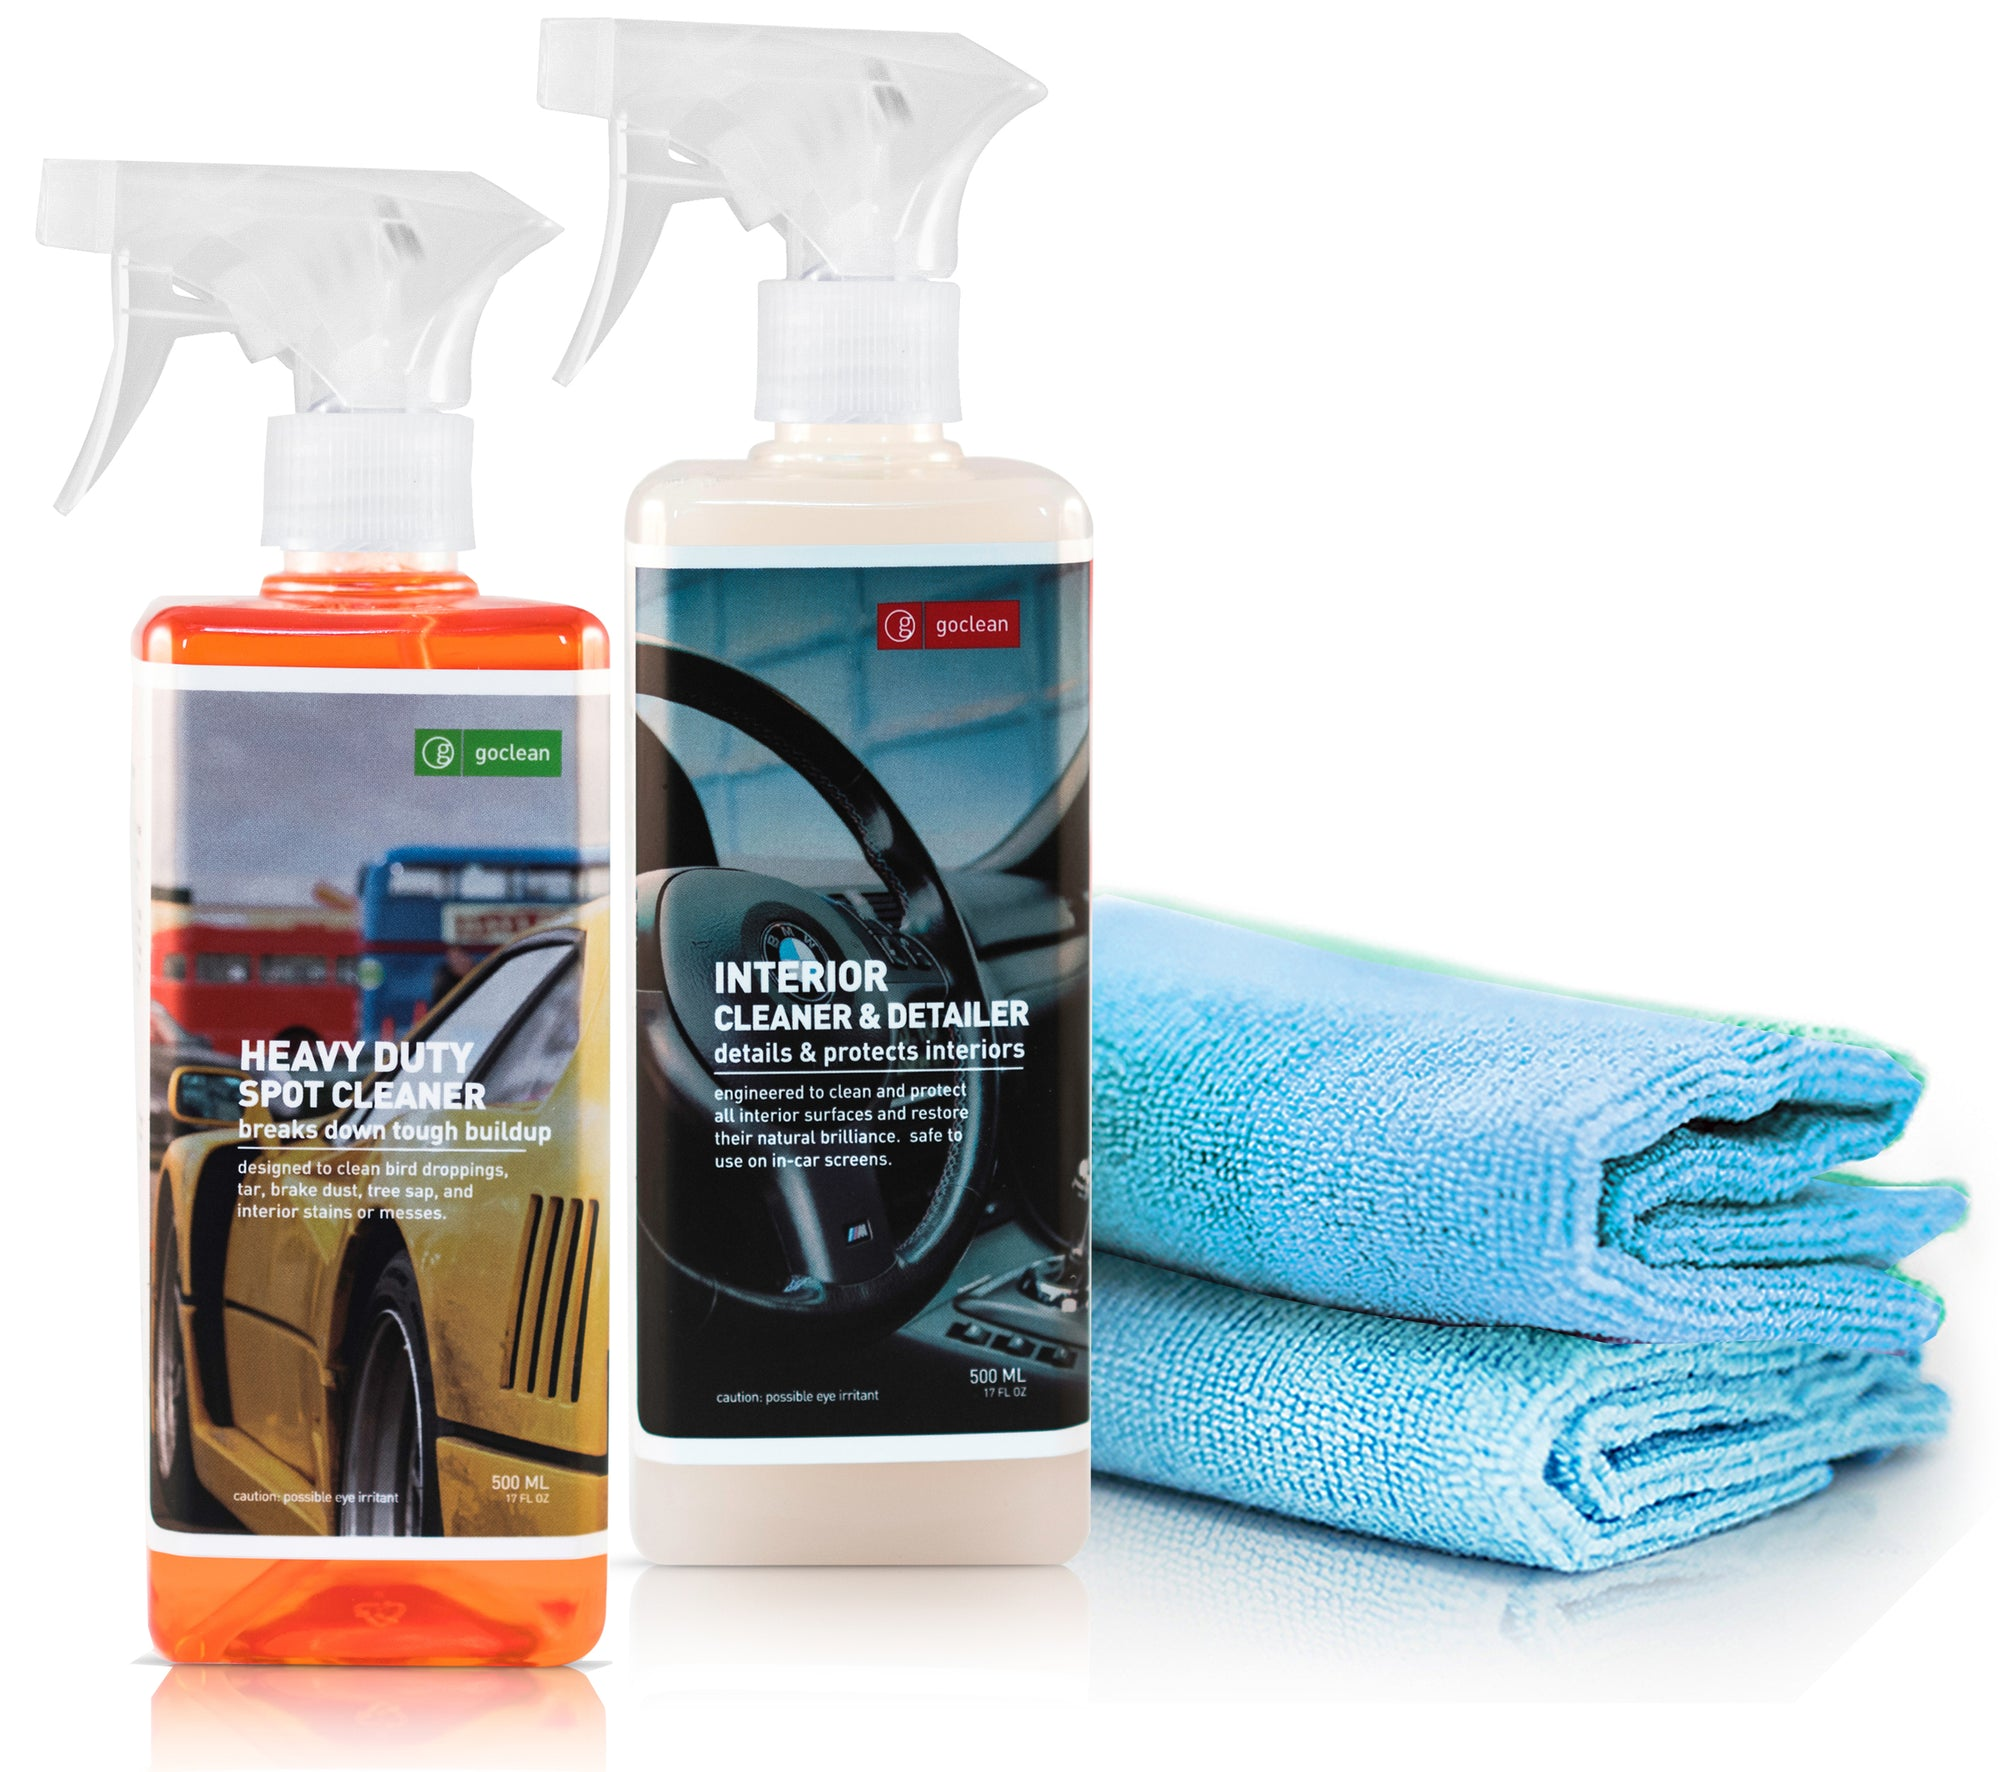 INTERIOR DISINFECTING & CLEANING BUNDLE (GERM KILLER)